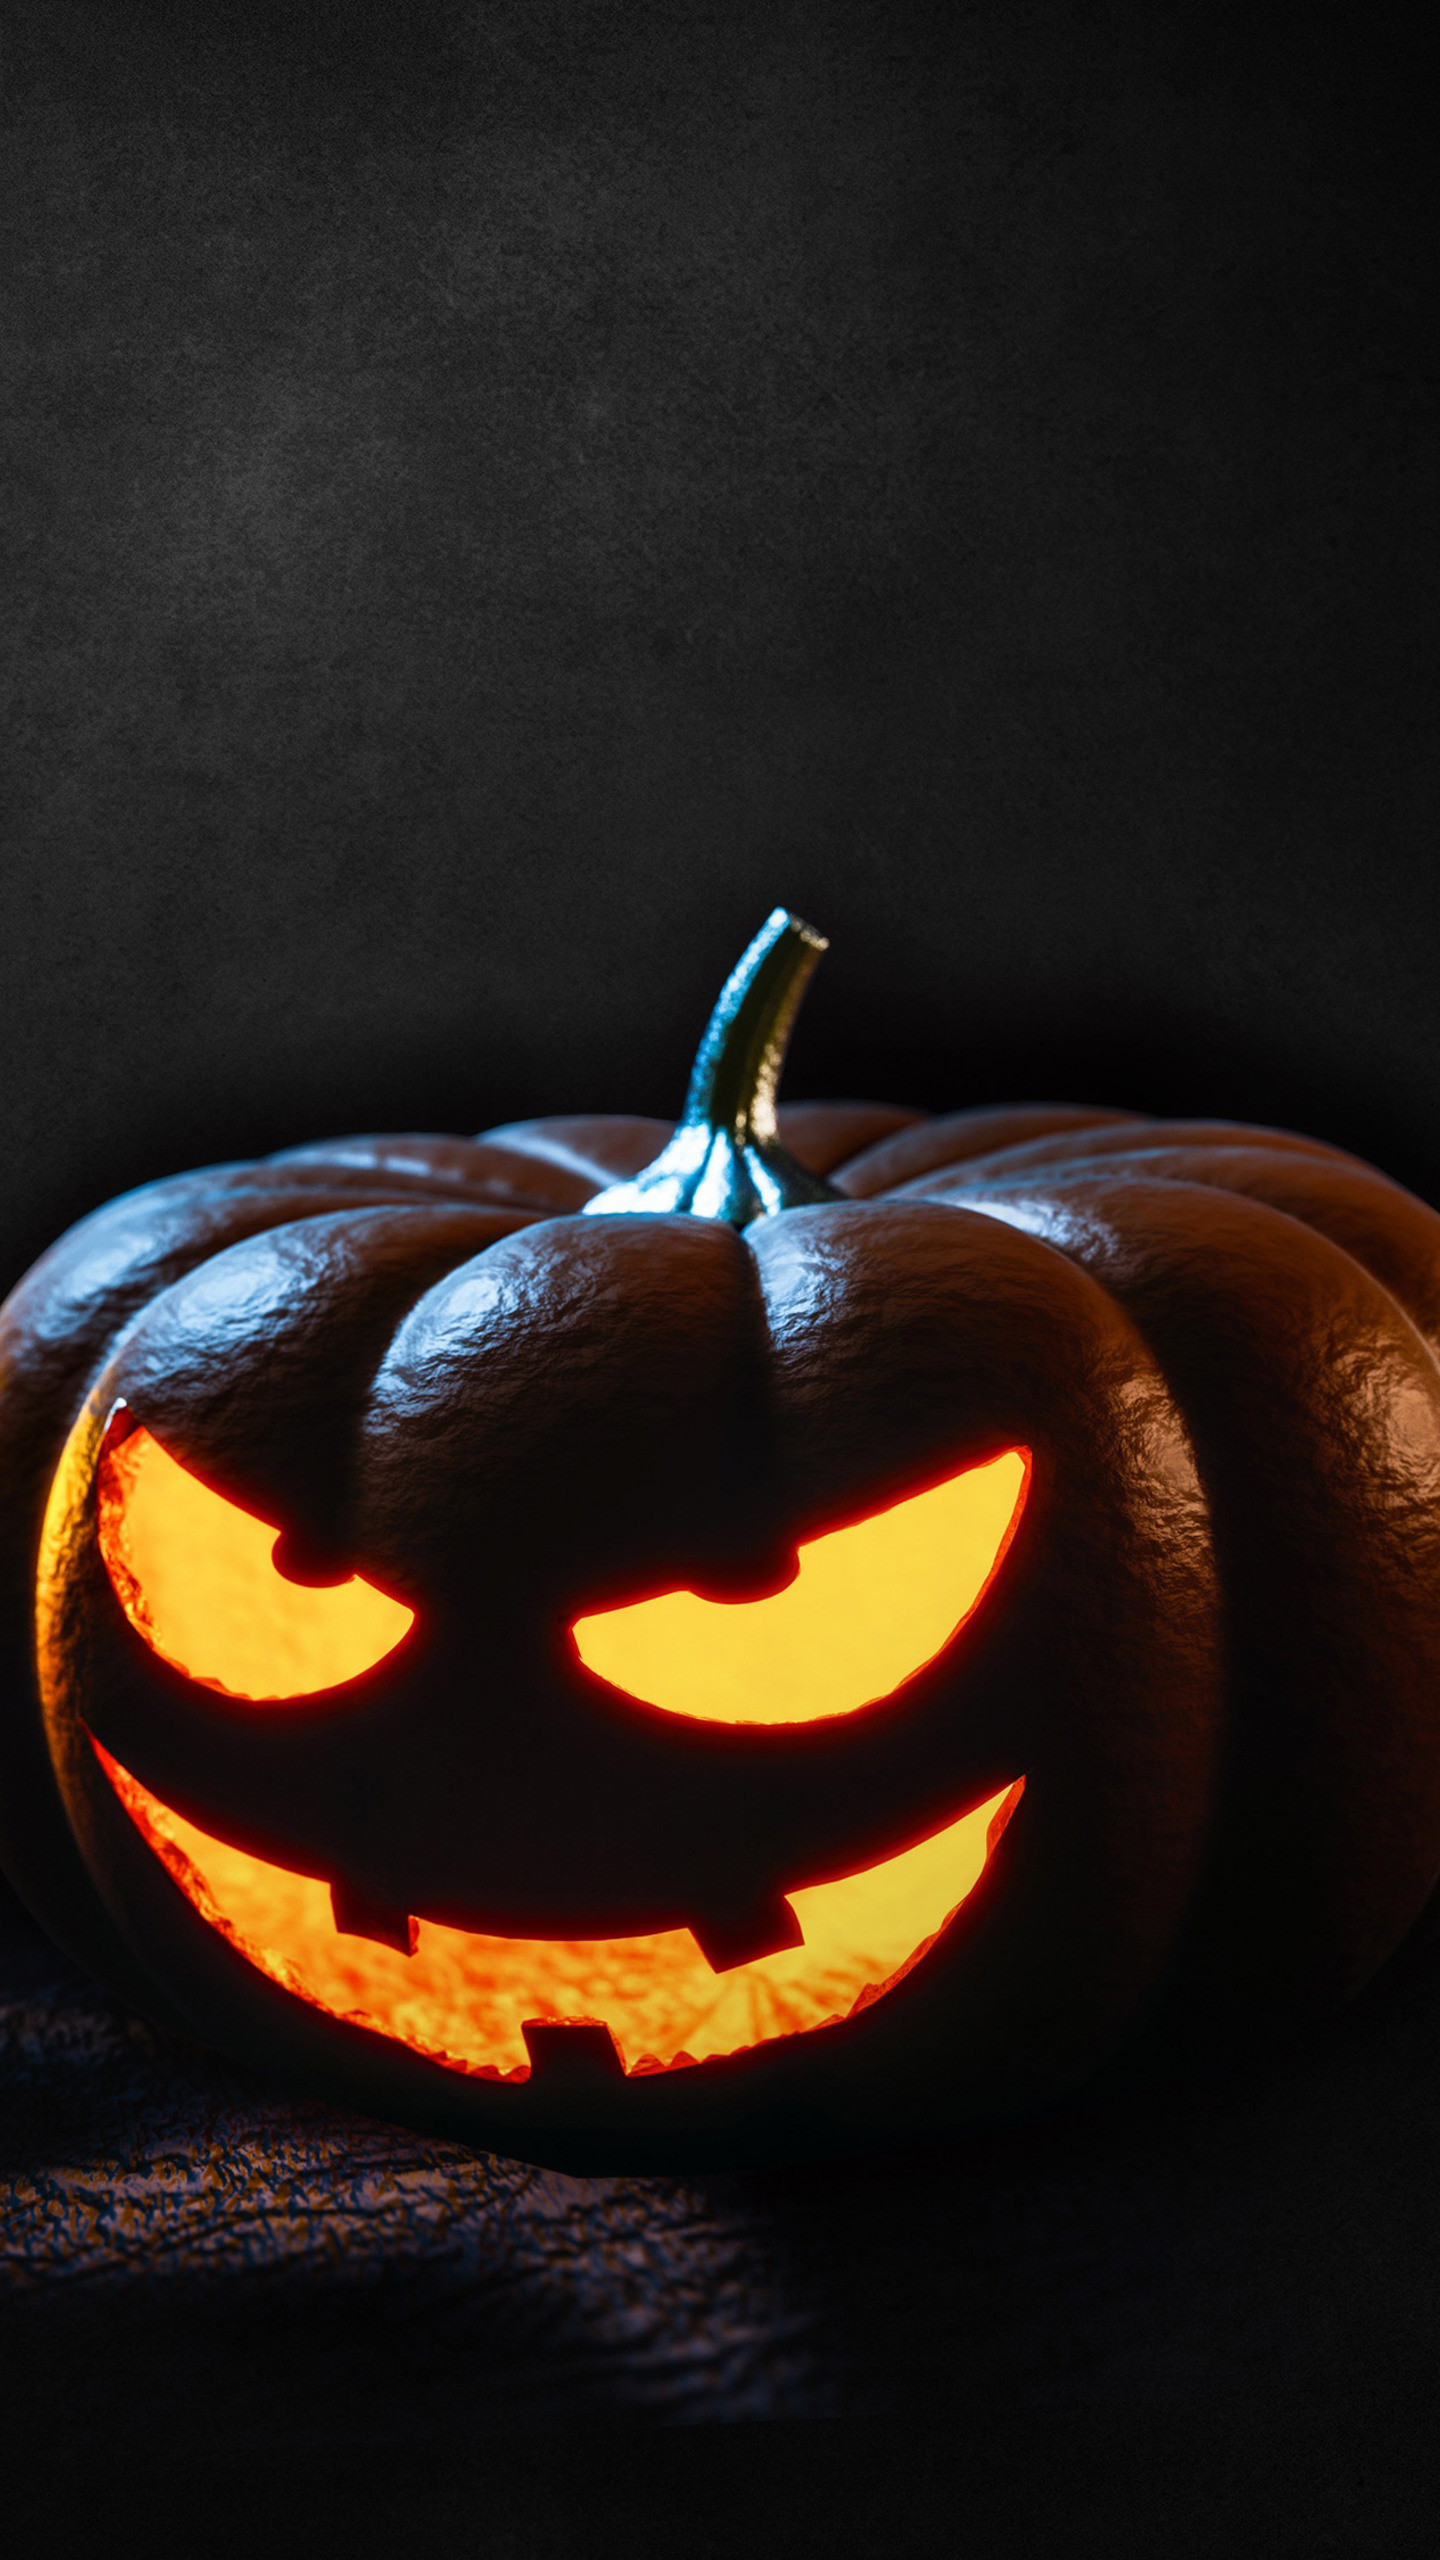 Popular Wallpaper Halloween Galaxy - happy-halloween-pumpkin-img-1440x2560  You Should Have_614388.jpg